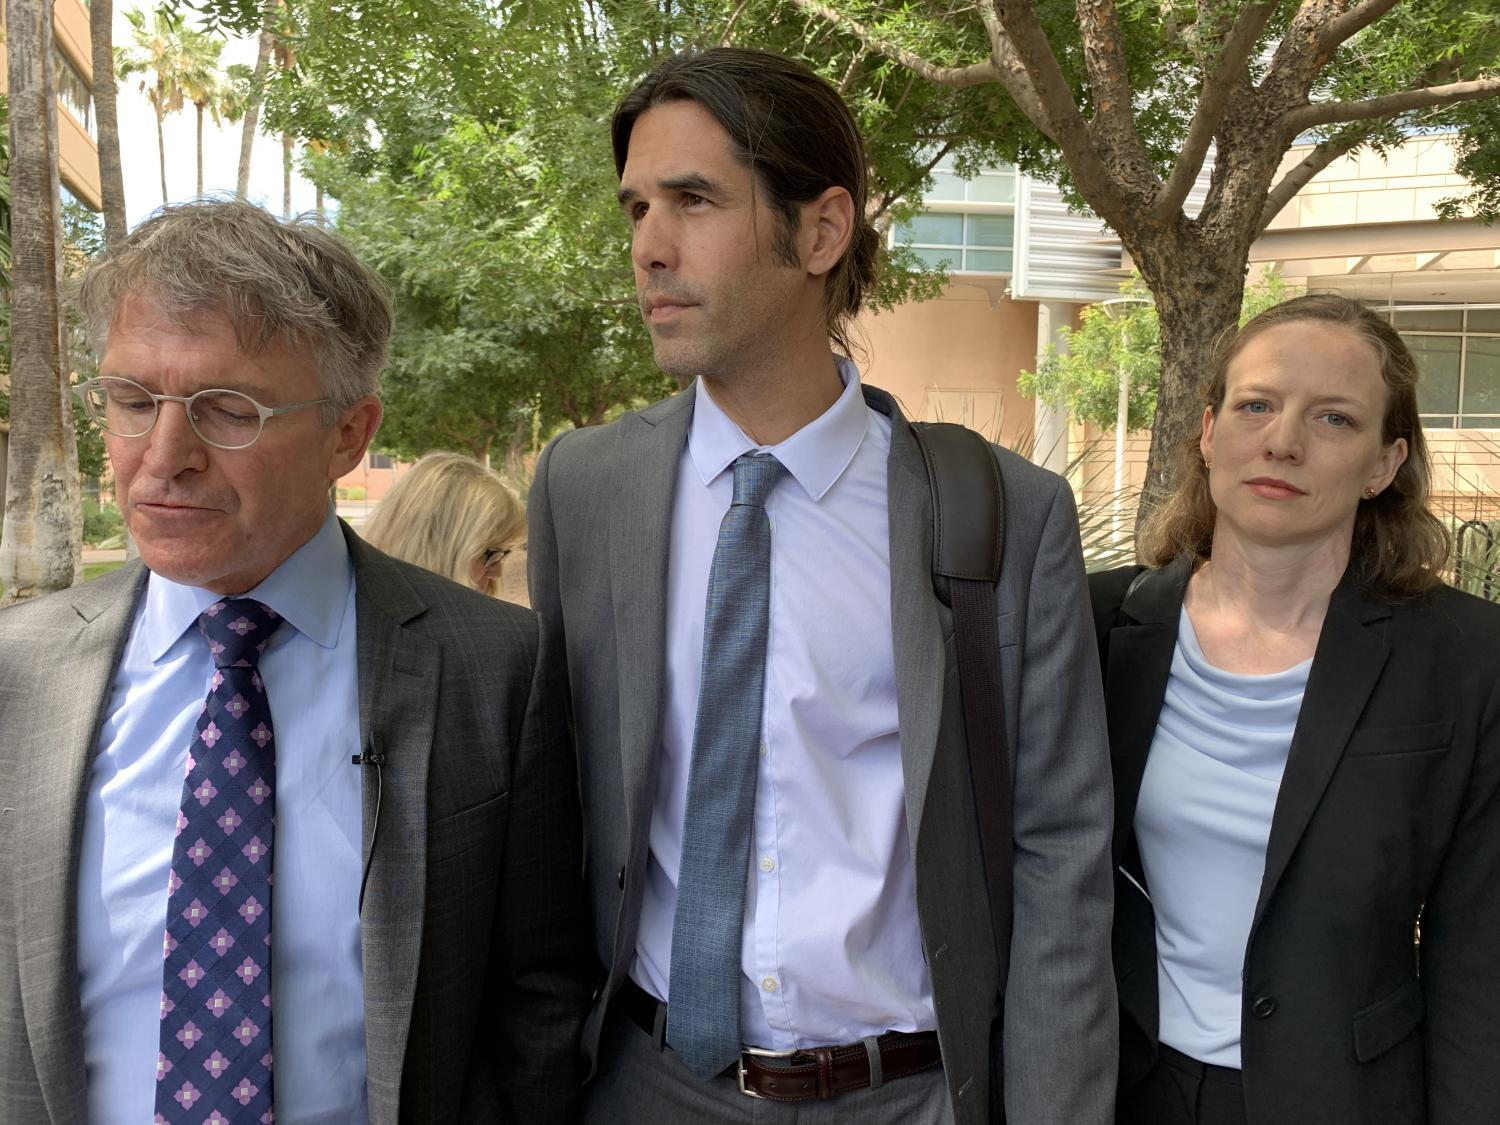 Scott Warren, center, flanked by his attorneys